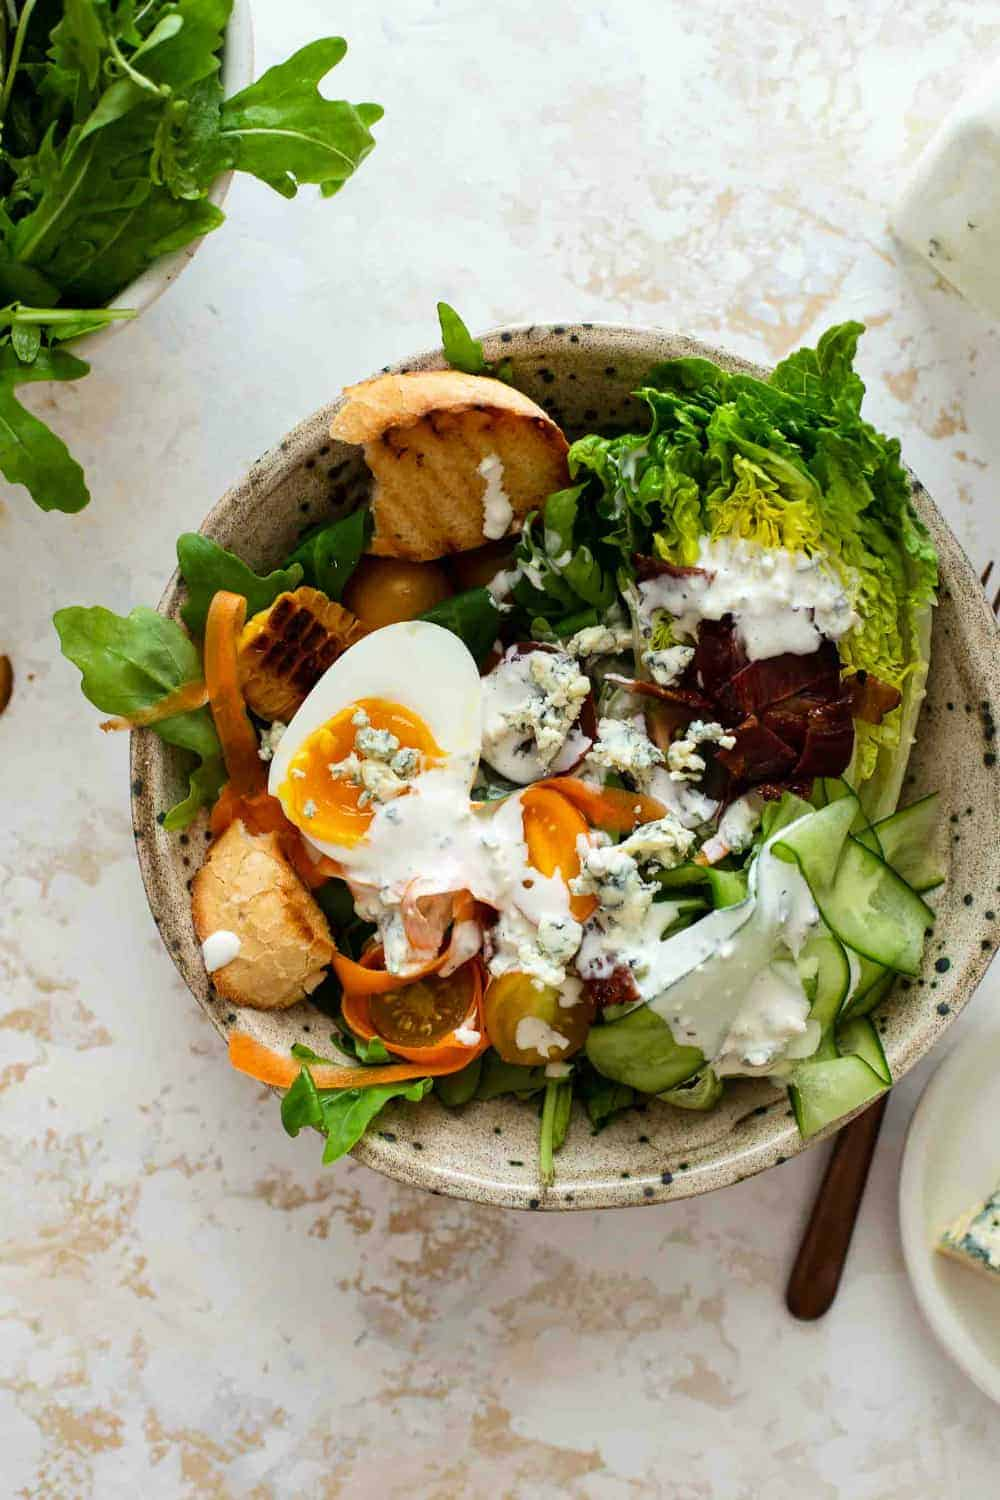 Mixed salad dressed with blue cheese dressing